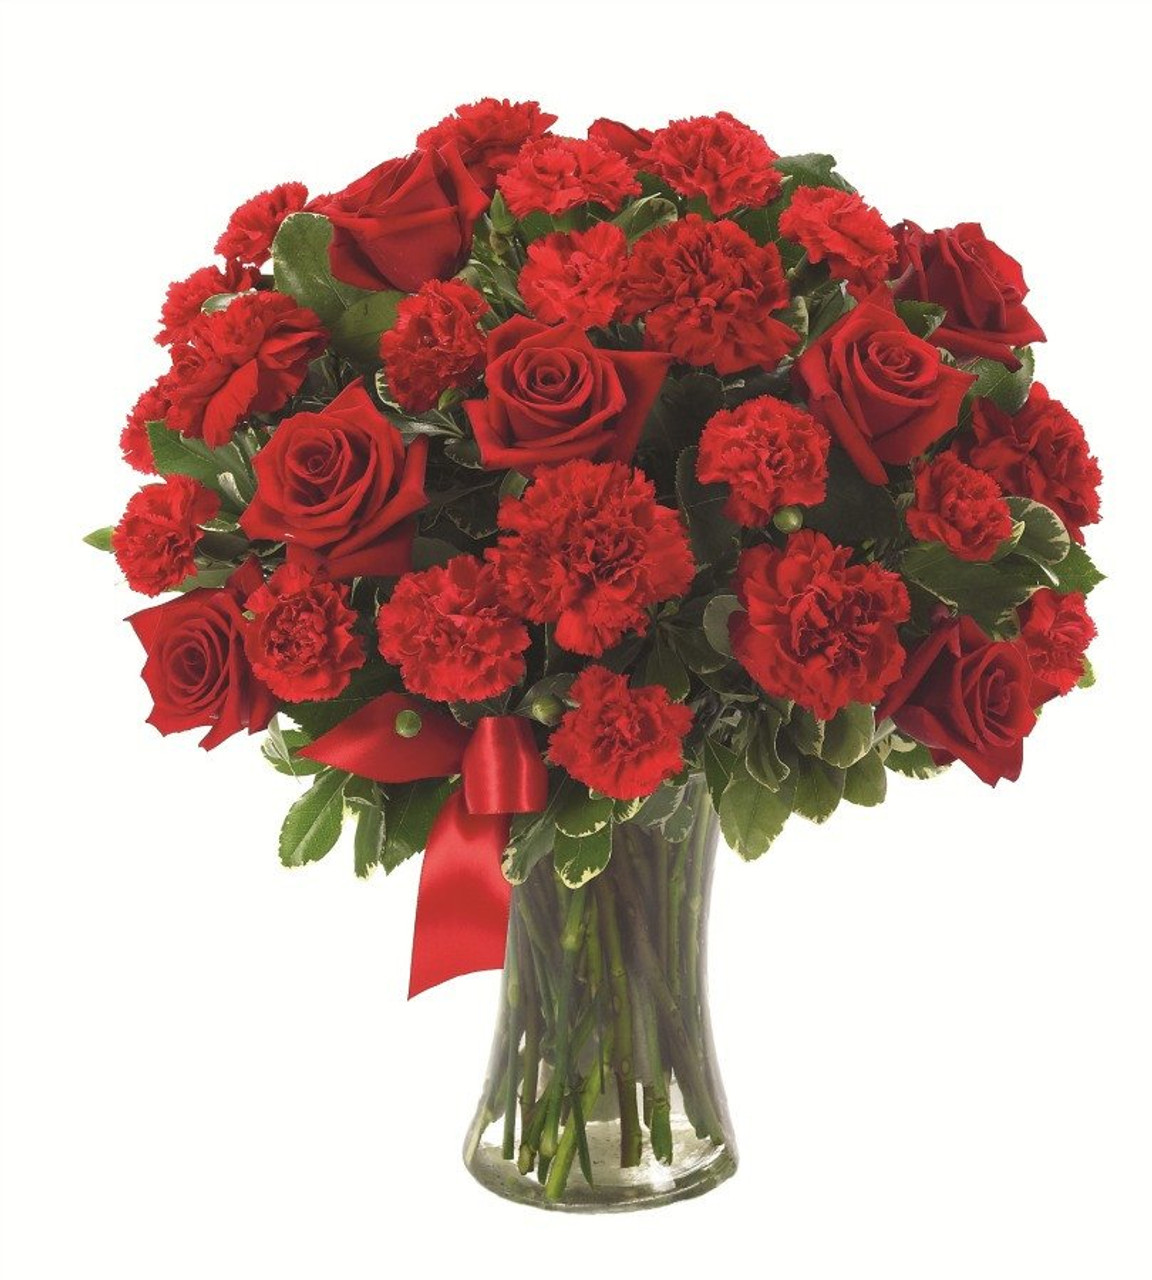 20 Red Carnations & 12 Red Roses Bouquet